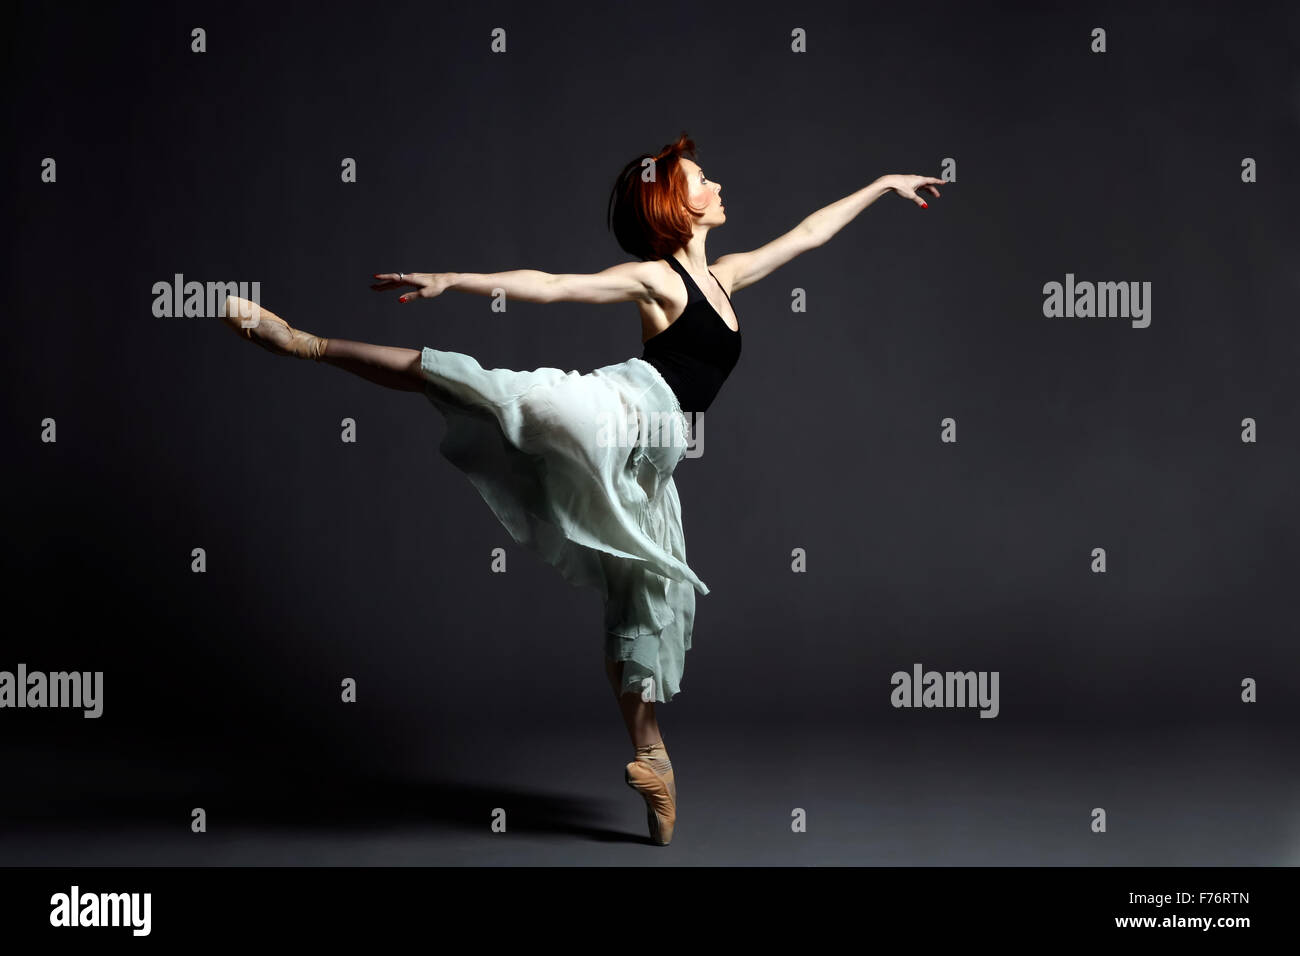 Ballet dancer performing on stage Stock Photo